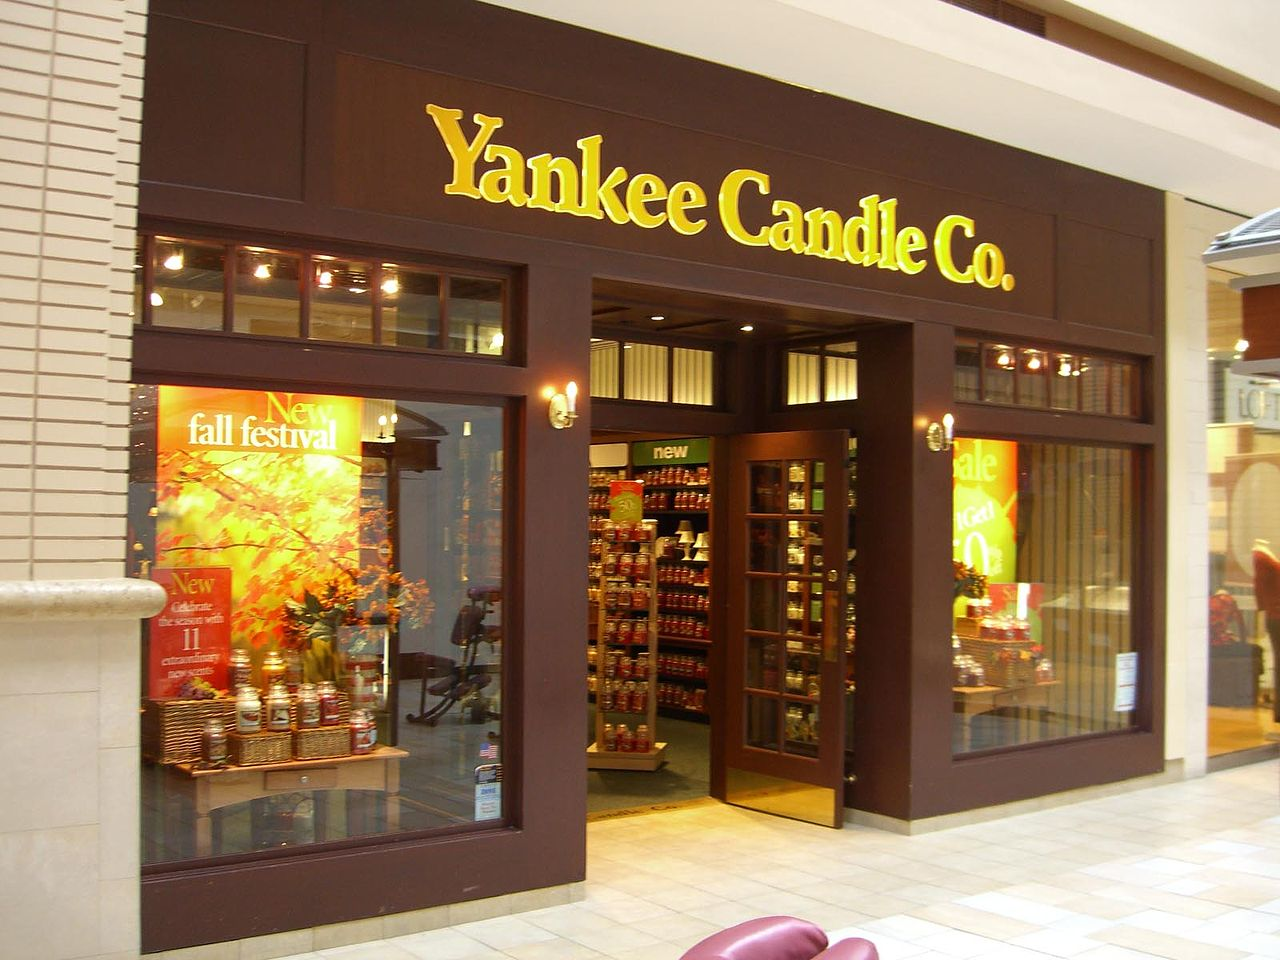 graphic relating to Yankee Candle $10 Off $25 Printable Coupon titled Complete Procuring Neighborhood